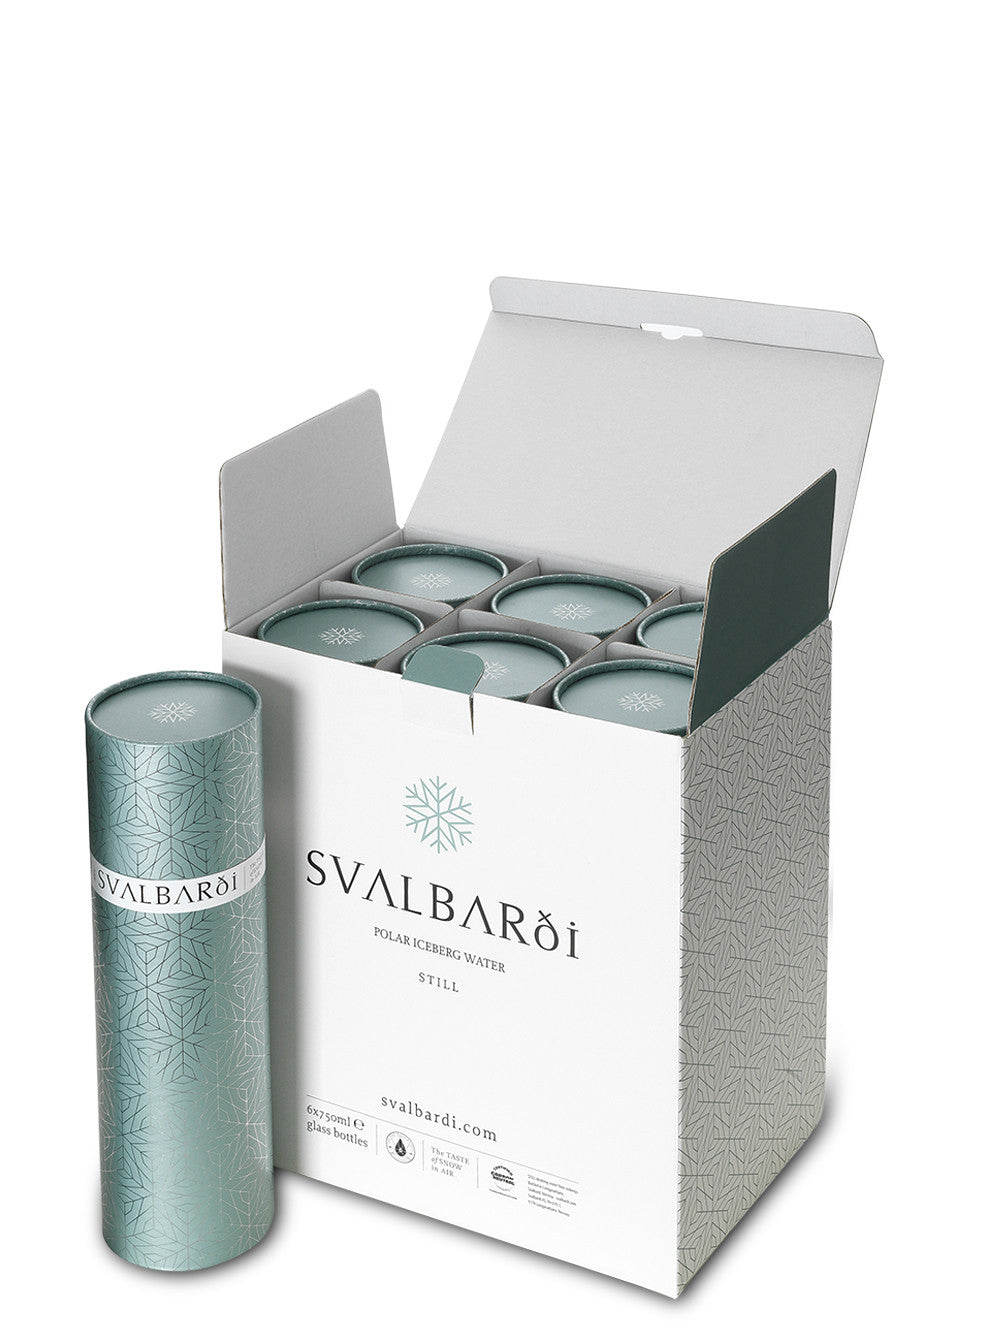 Case of 6 with Gift Tubes (€59.95/bottle) - Free Shipping - svalbardiiceberg